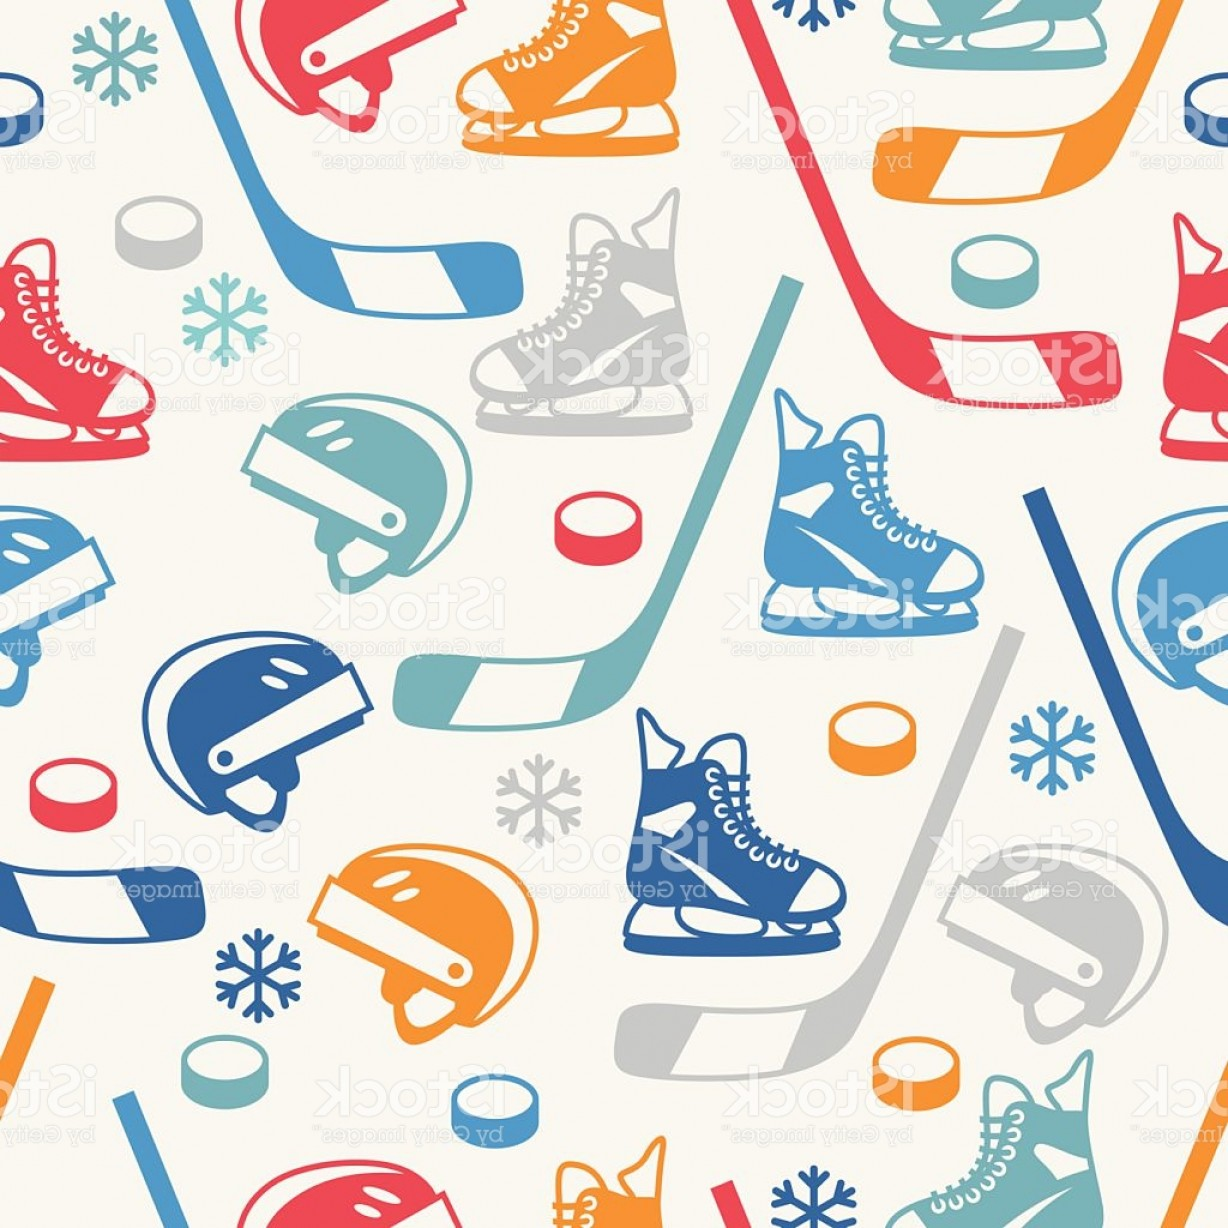 Hockey Vector Patterns: Sports Seamless Pattern With Hockey Equipment Flat Icons Gm